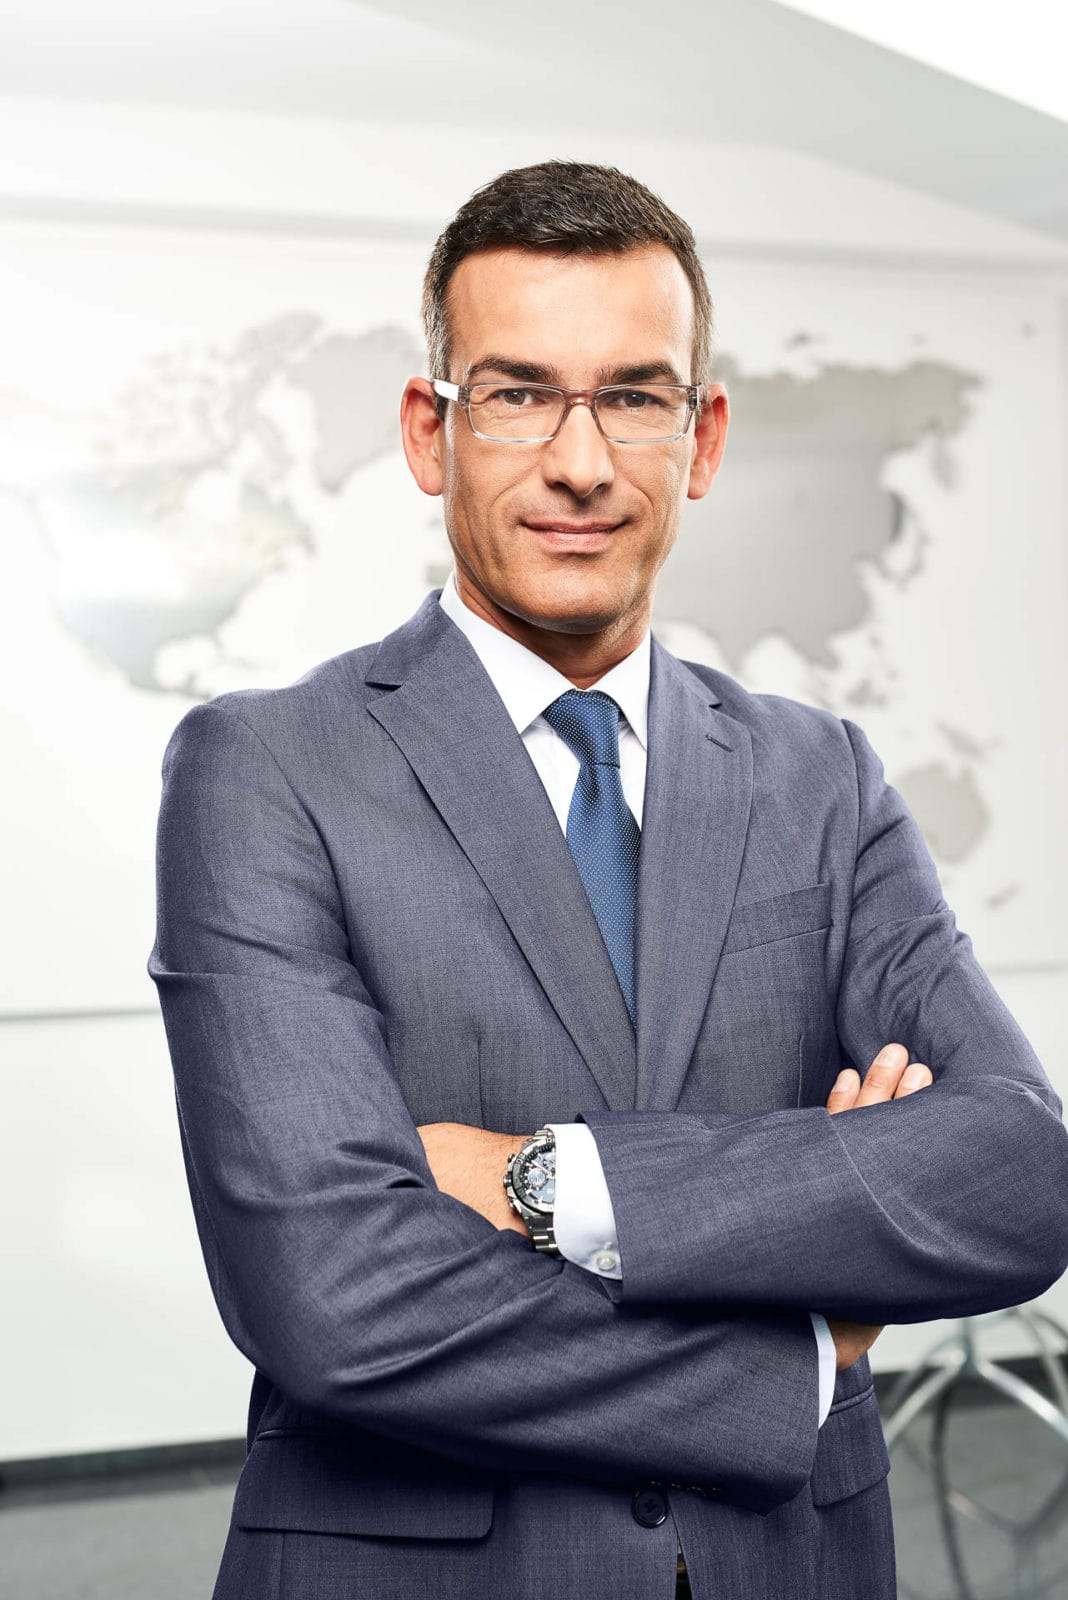 Headshot Corporate Portrait für den Kunden HARPEN IMMOBILIEN in Dortmund